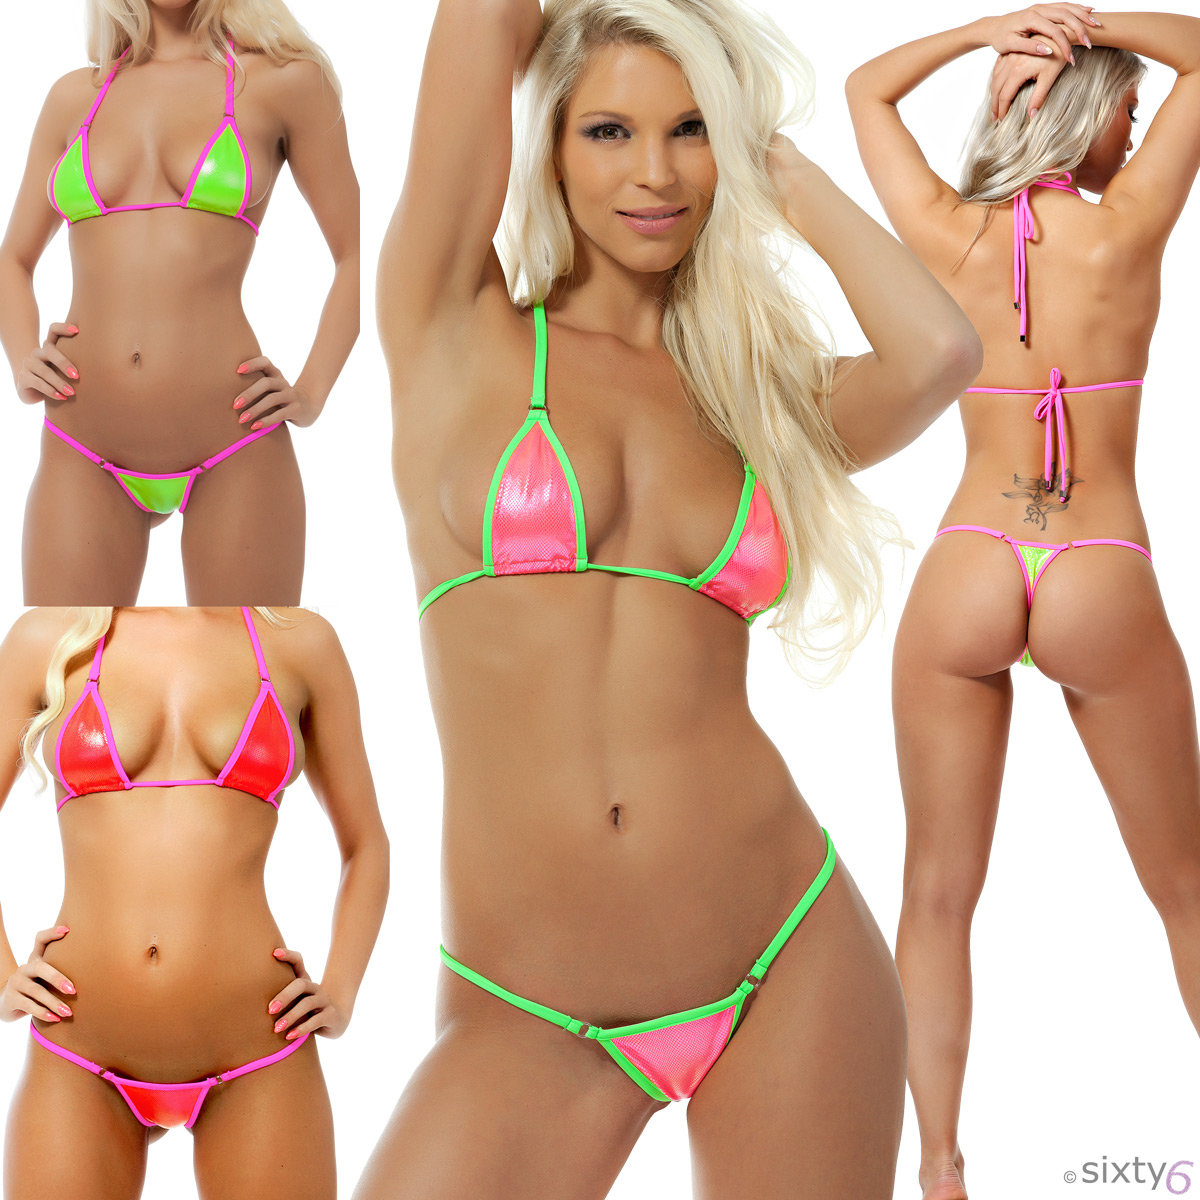 Barely string bikini pictures